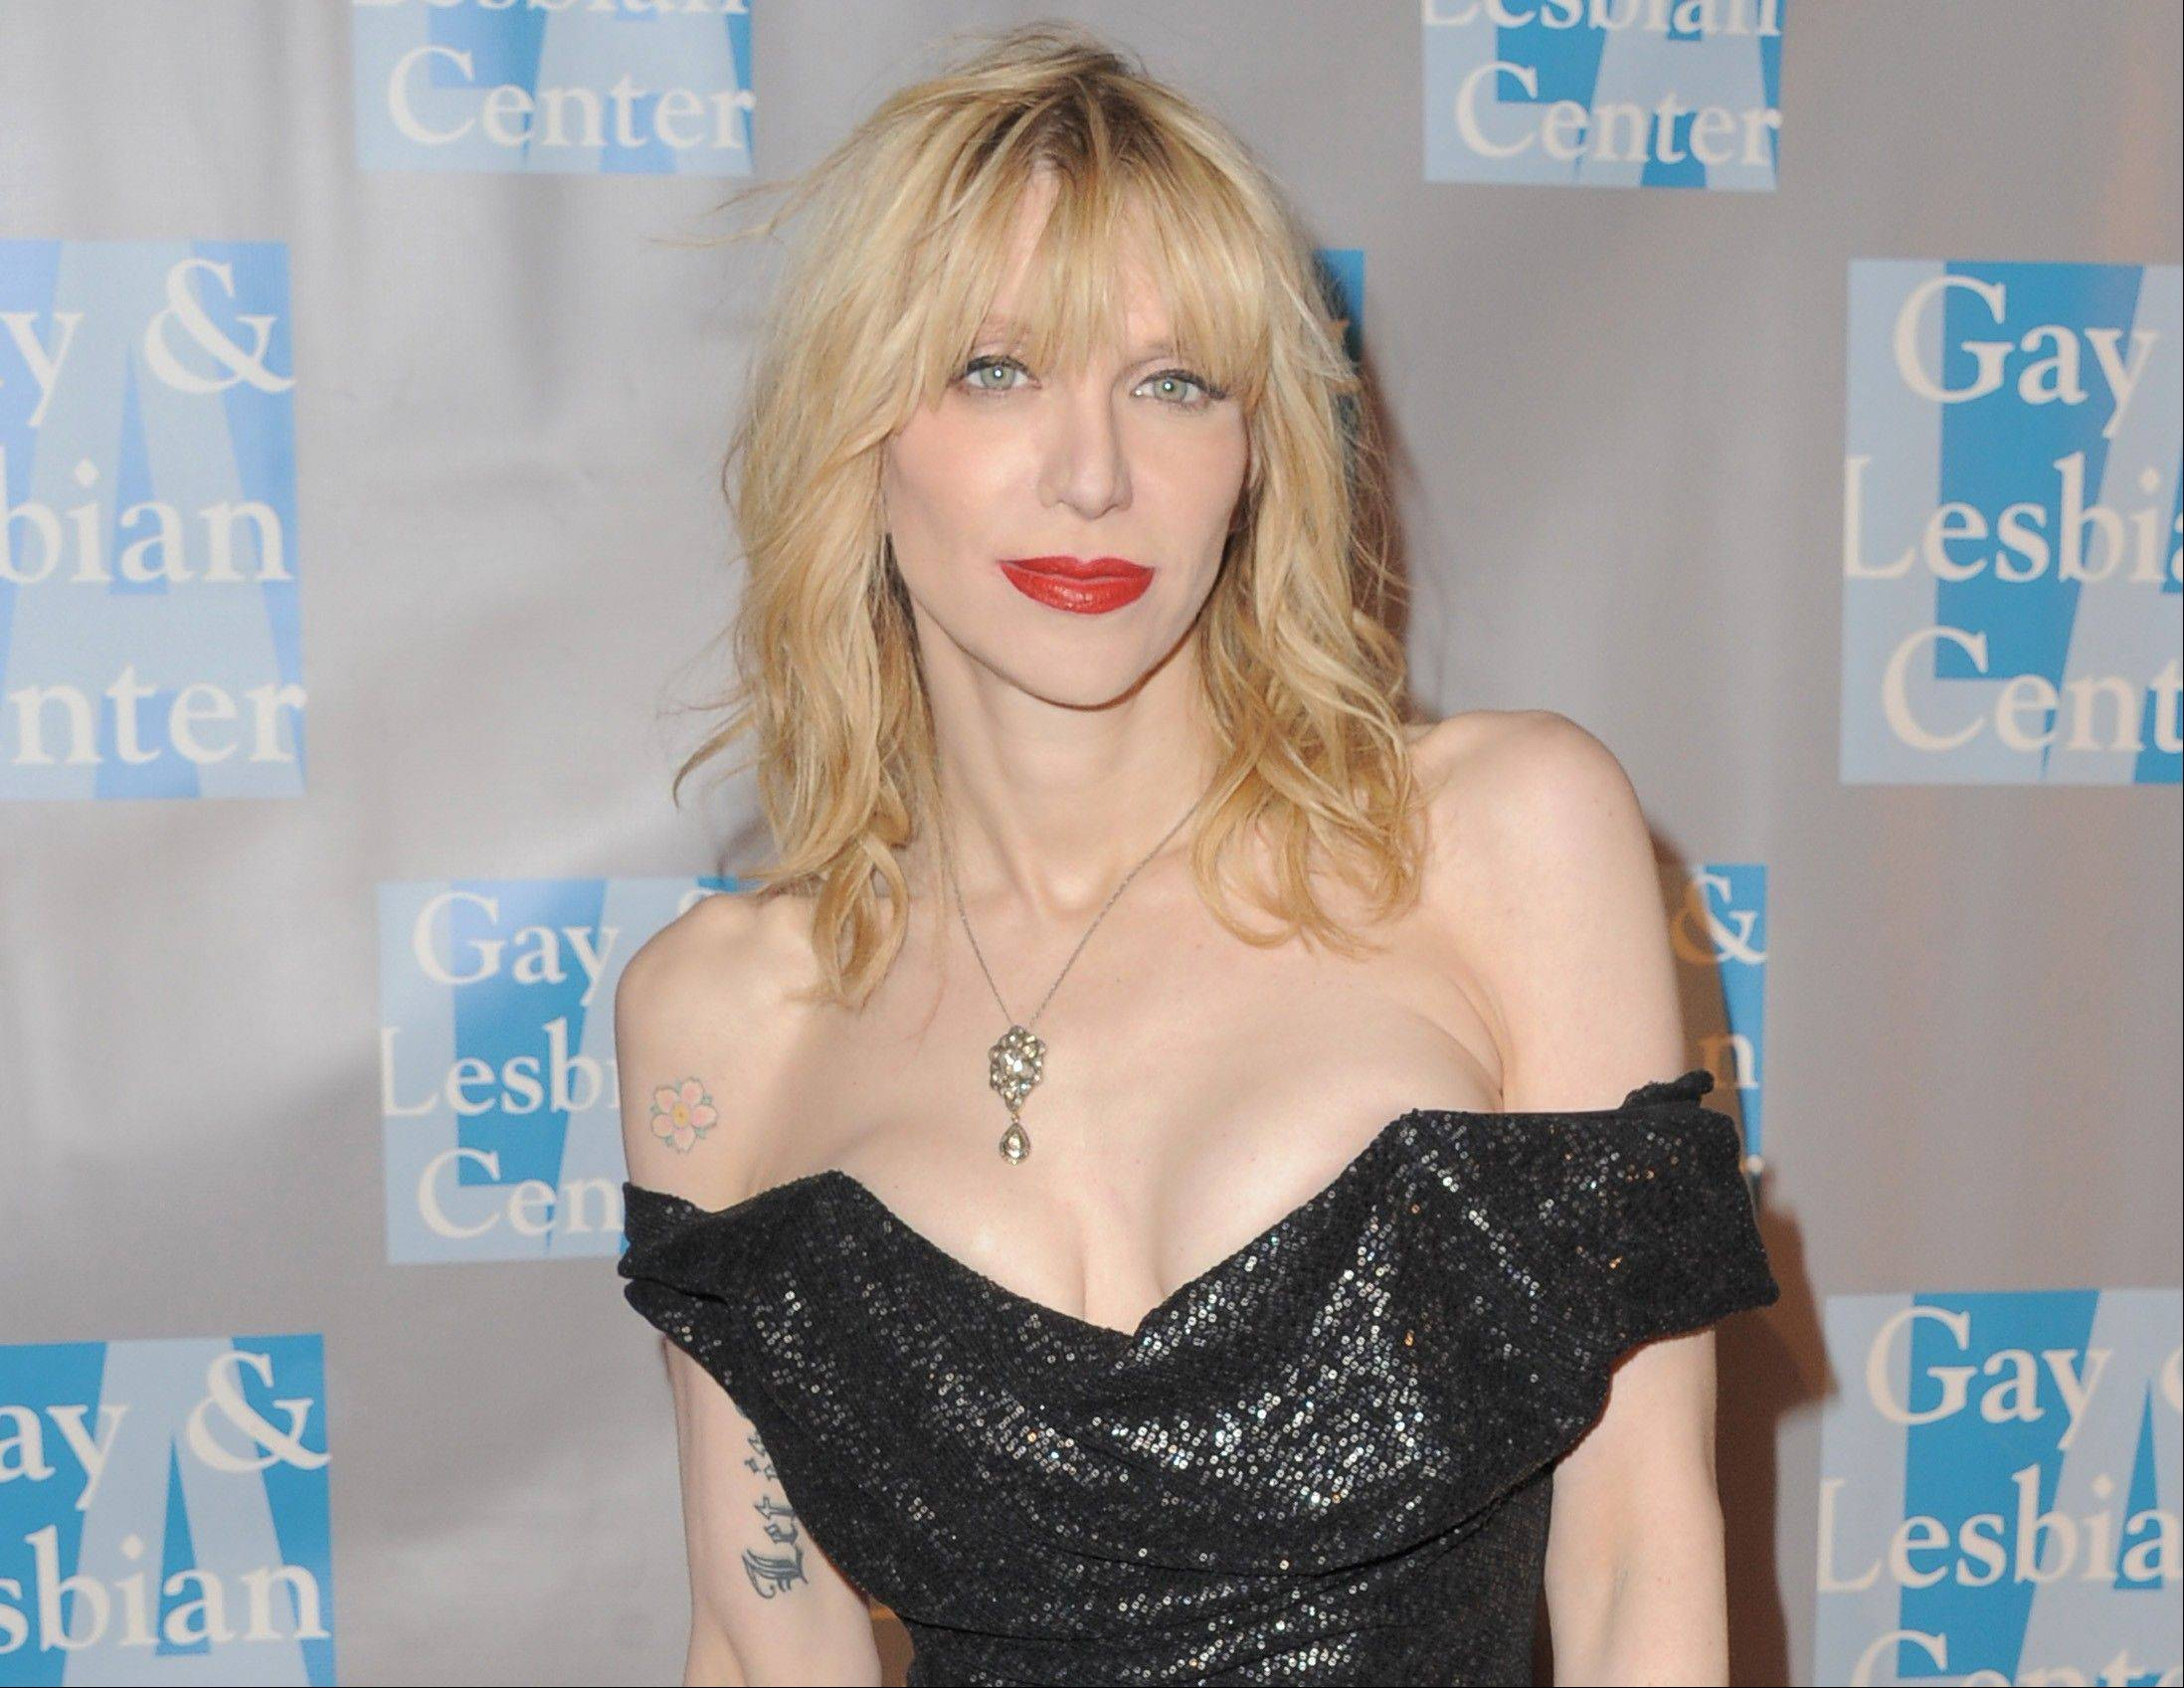 Courtney Love's former assistant sued the Hole front-woman on Tuesday claiming the rocker owes her unpaid wages.